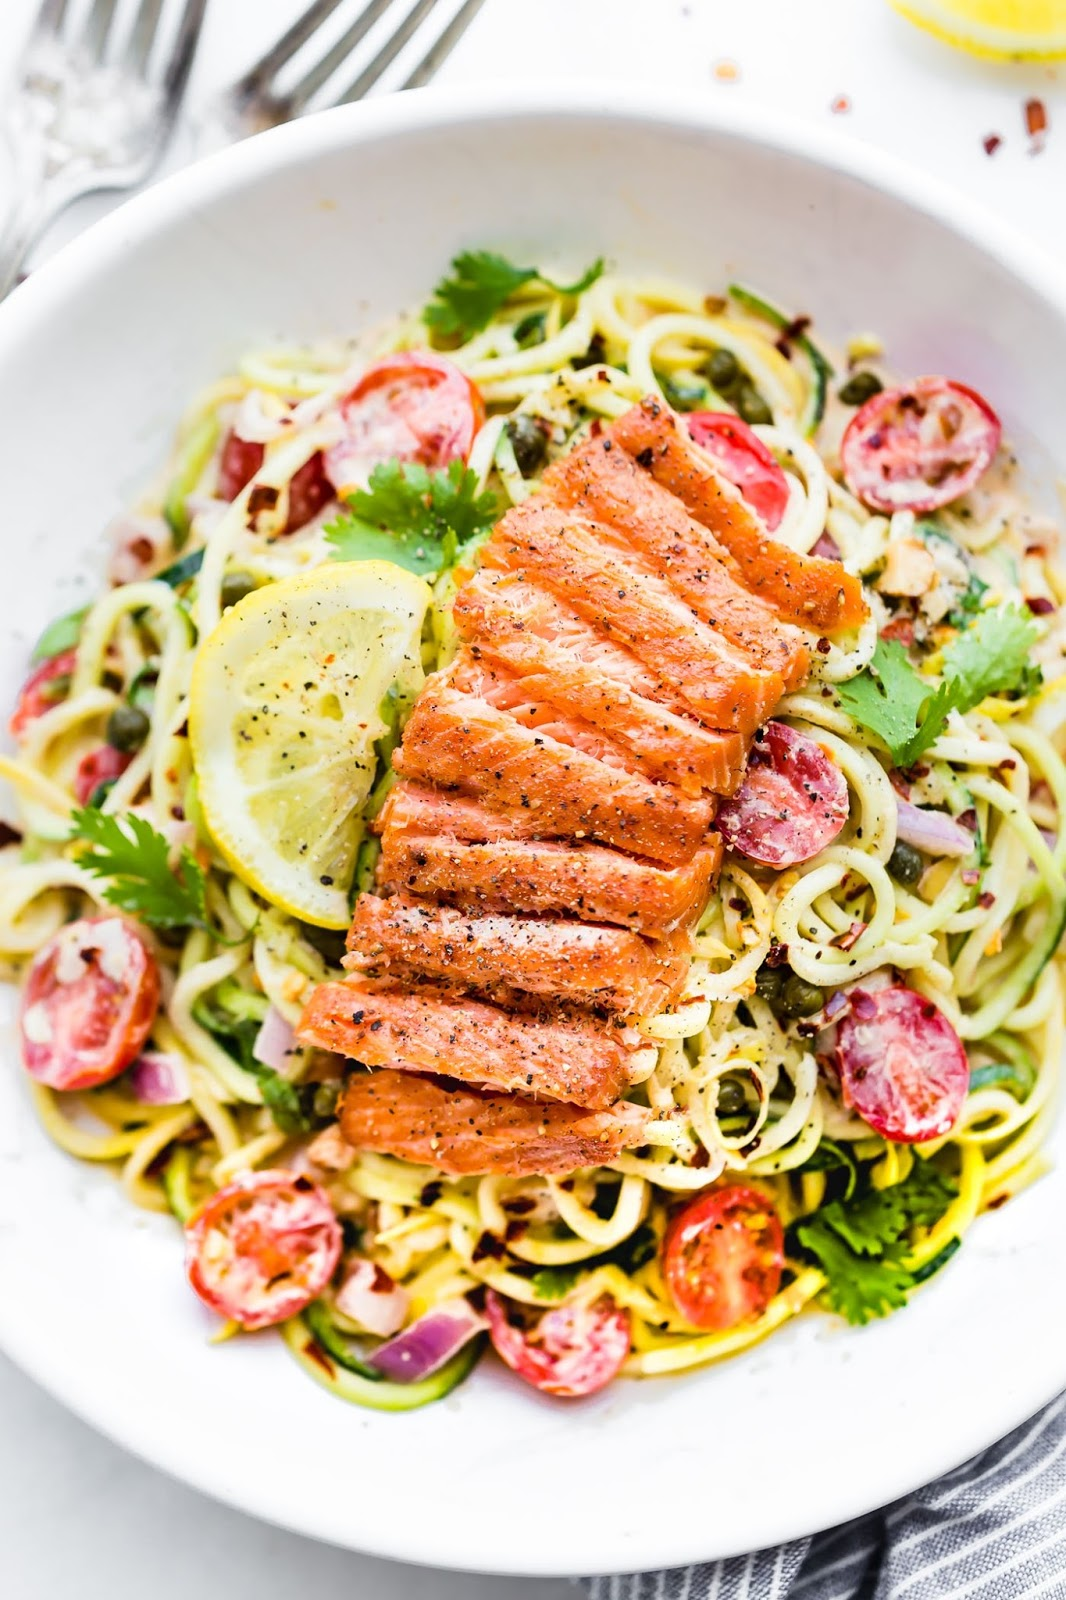 Cajun Smoked Salmon Zucchini Noodles Salad  A zippy cajun sauce tossed in chopped vegetables and zucchini noodles then topped with peppery smoked salmon. Healthy Swaps - Zucchini noodles and Smoked salmon instead of pasta or chicken.